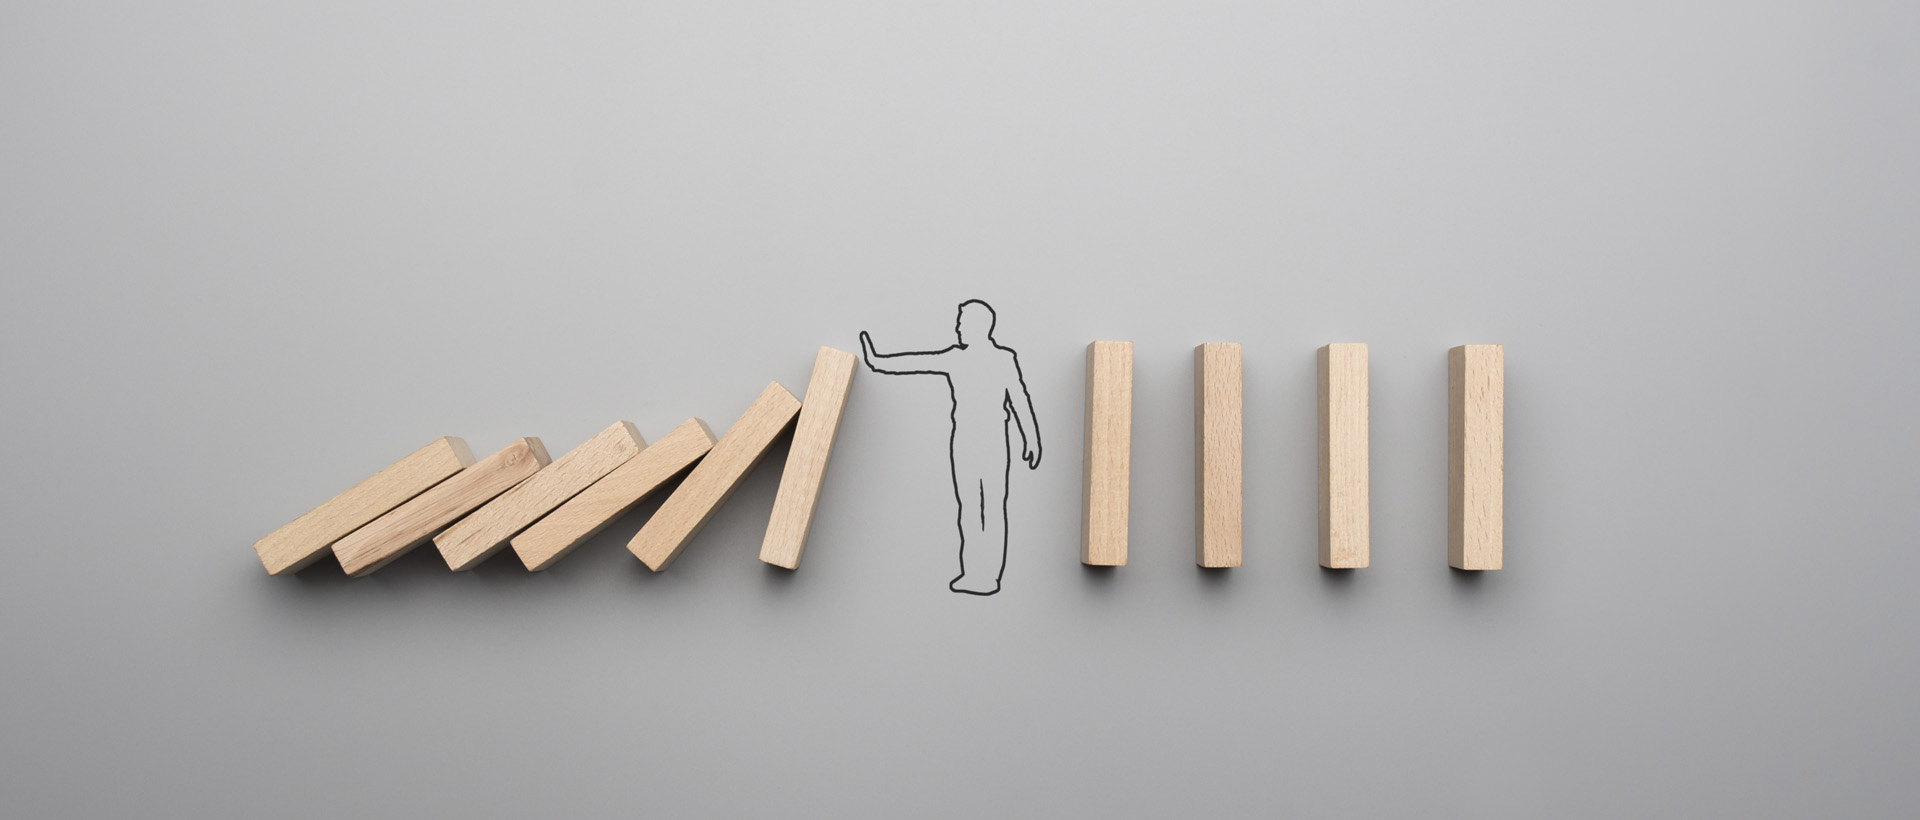 Mediator image - man stopping one party of blocks hitting the others